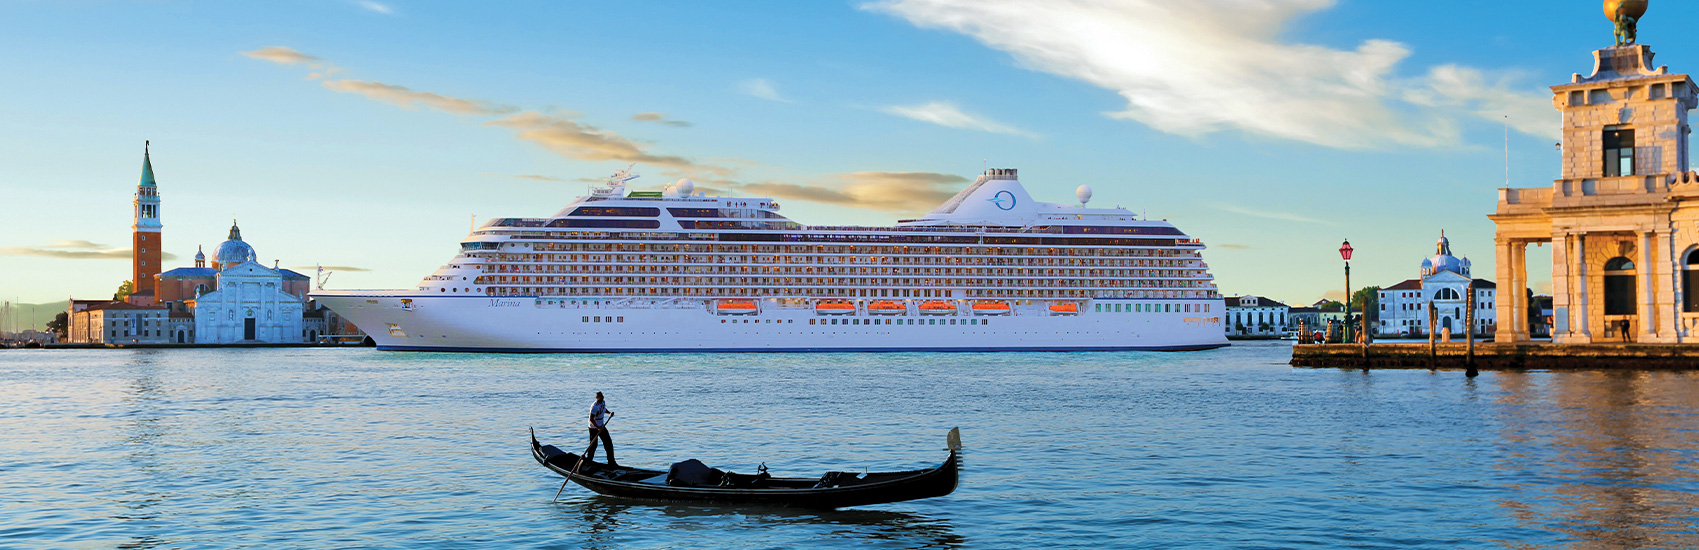 Embrace Your Passion With Oceania Cruises 1